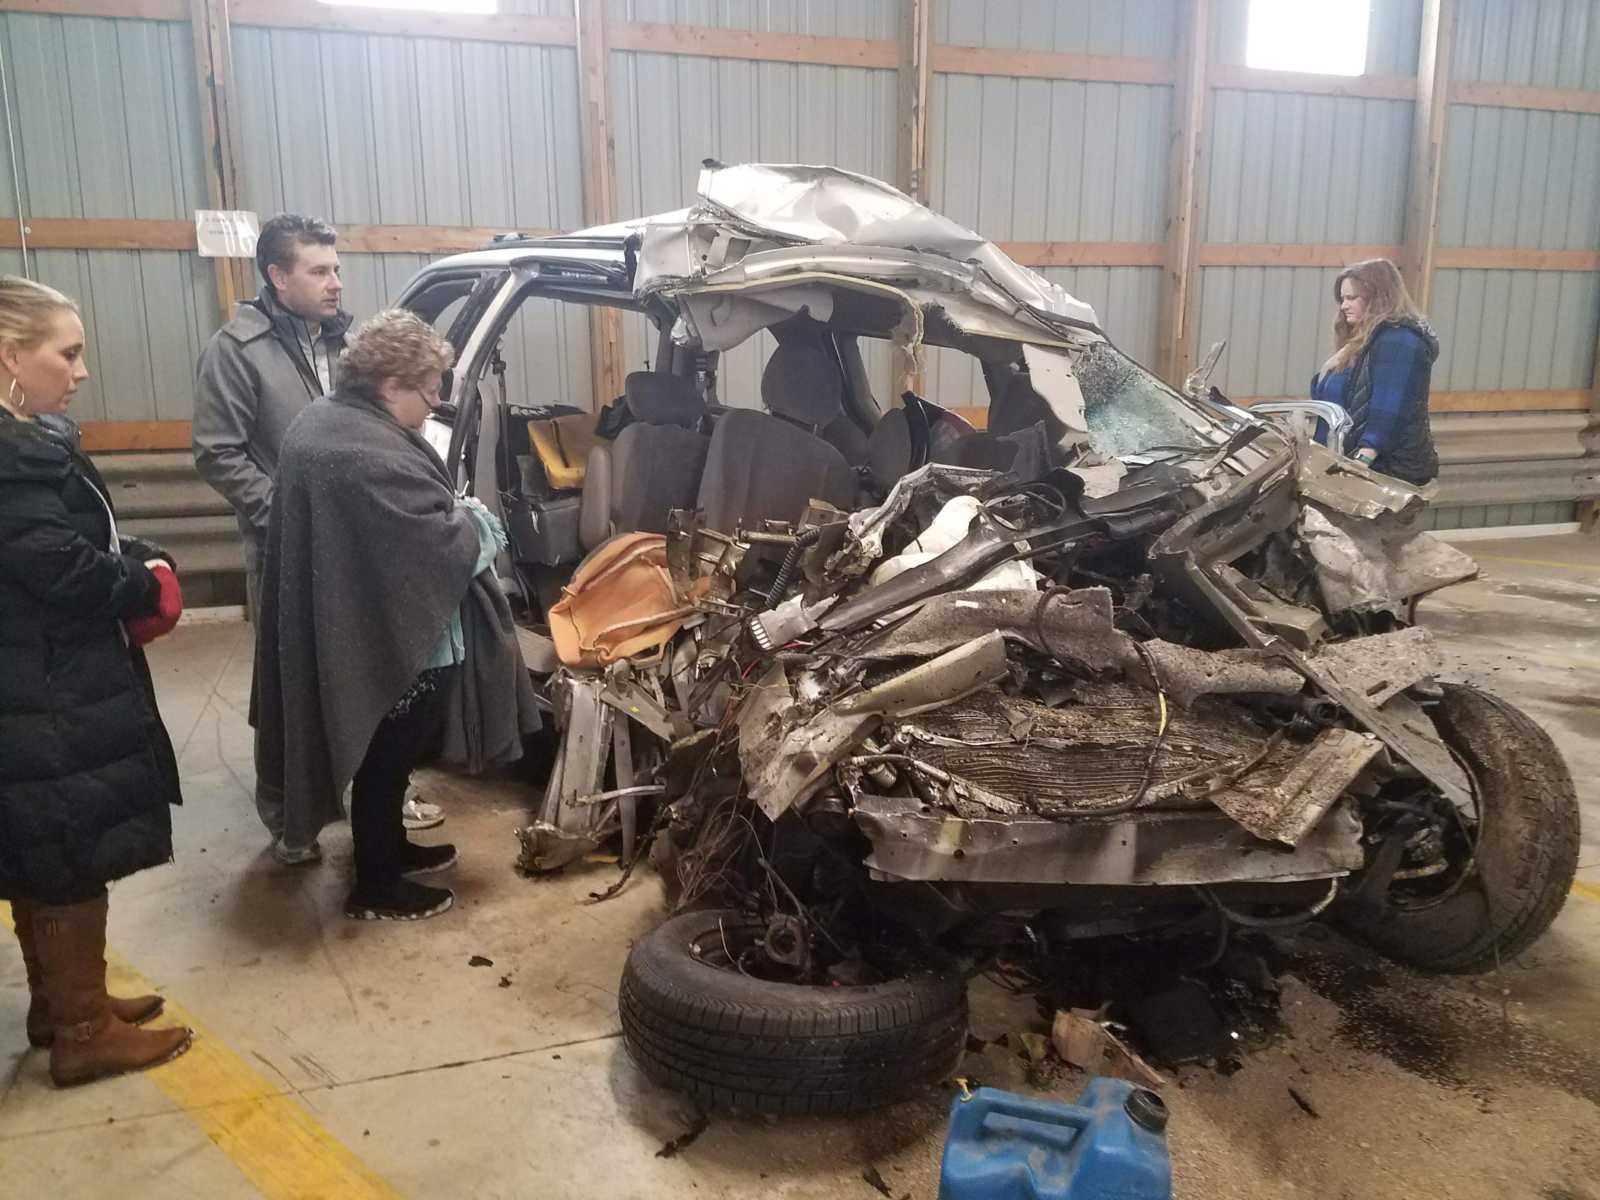 The van my sister took her last breath in, after someone crossed the center line and hit her head on. My mom, brother, and sister-in-law take their first look at the vehicle after the accident.